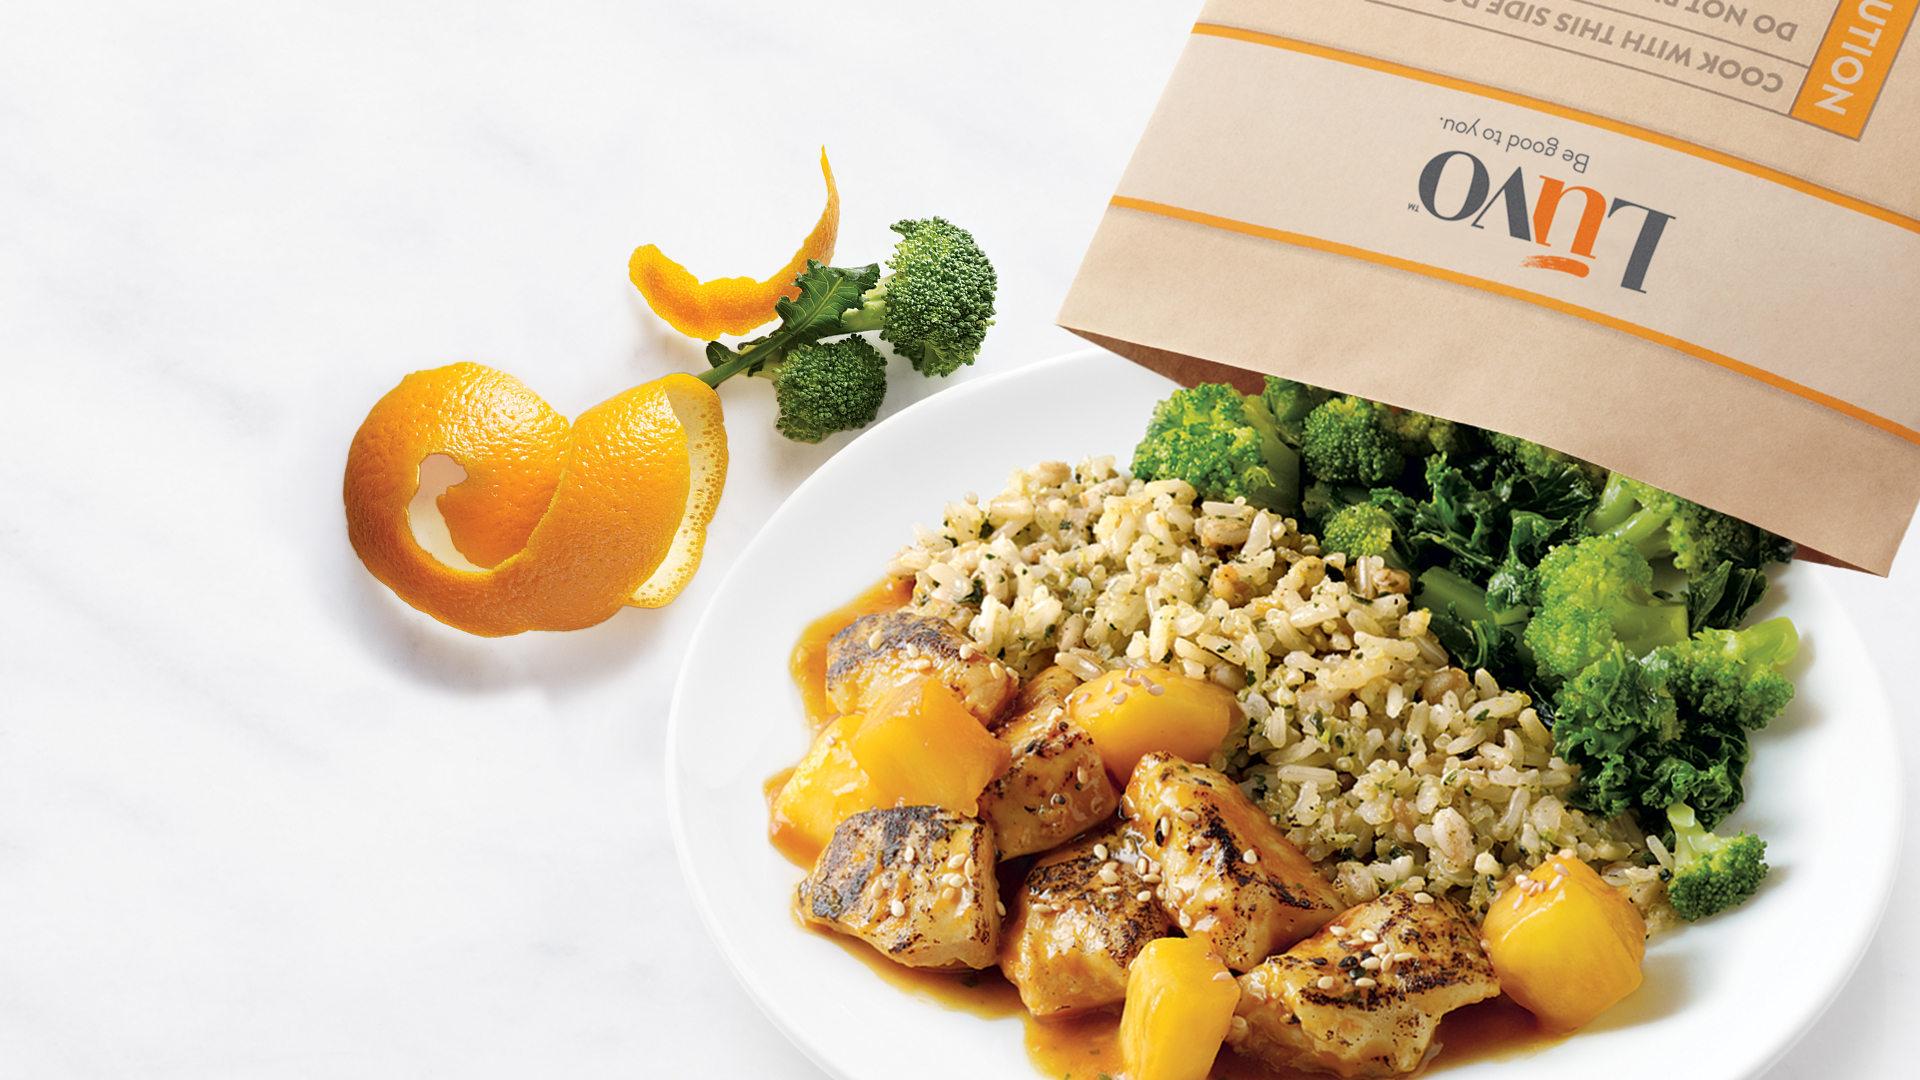 Frozen-food company Luvo makes meals low in sodium and added sugars.